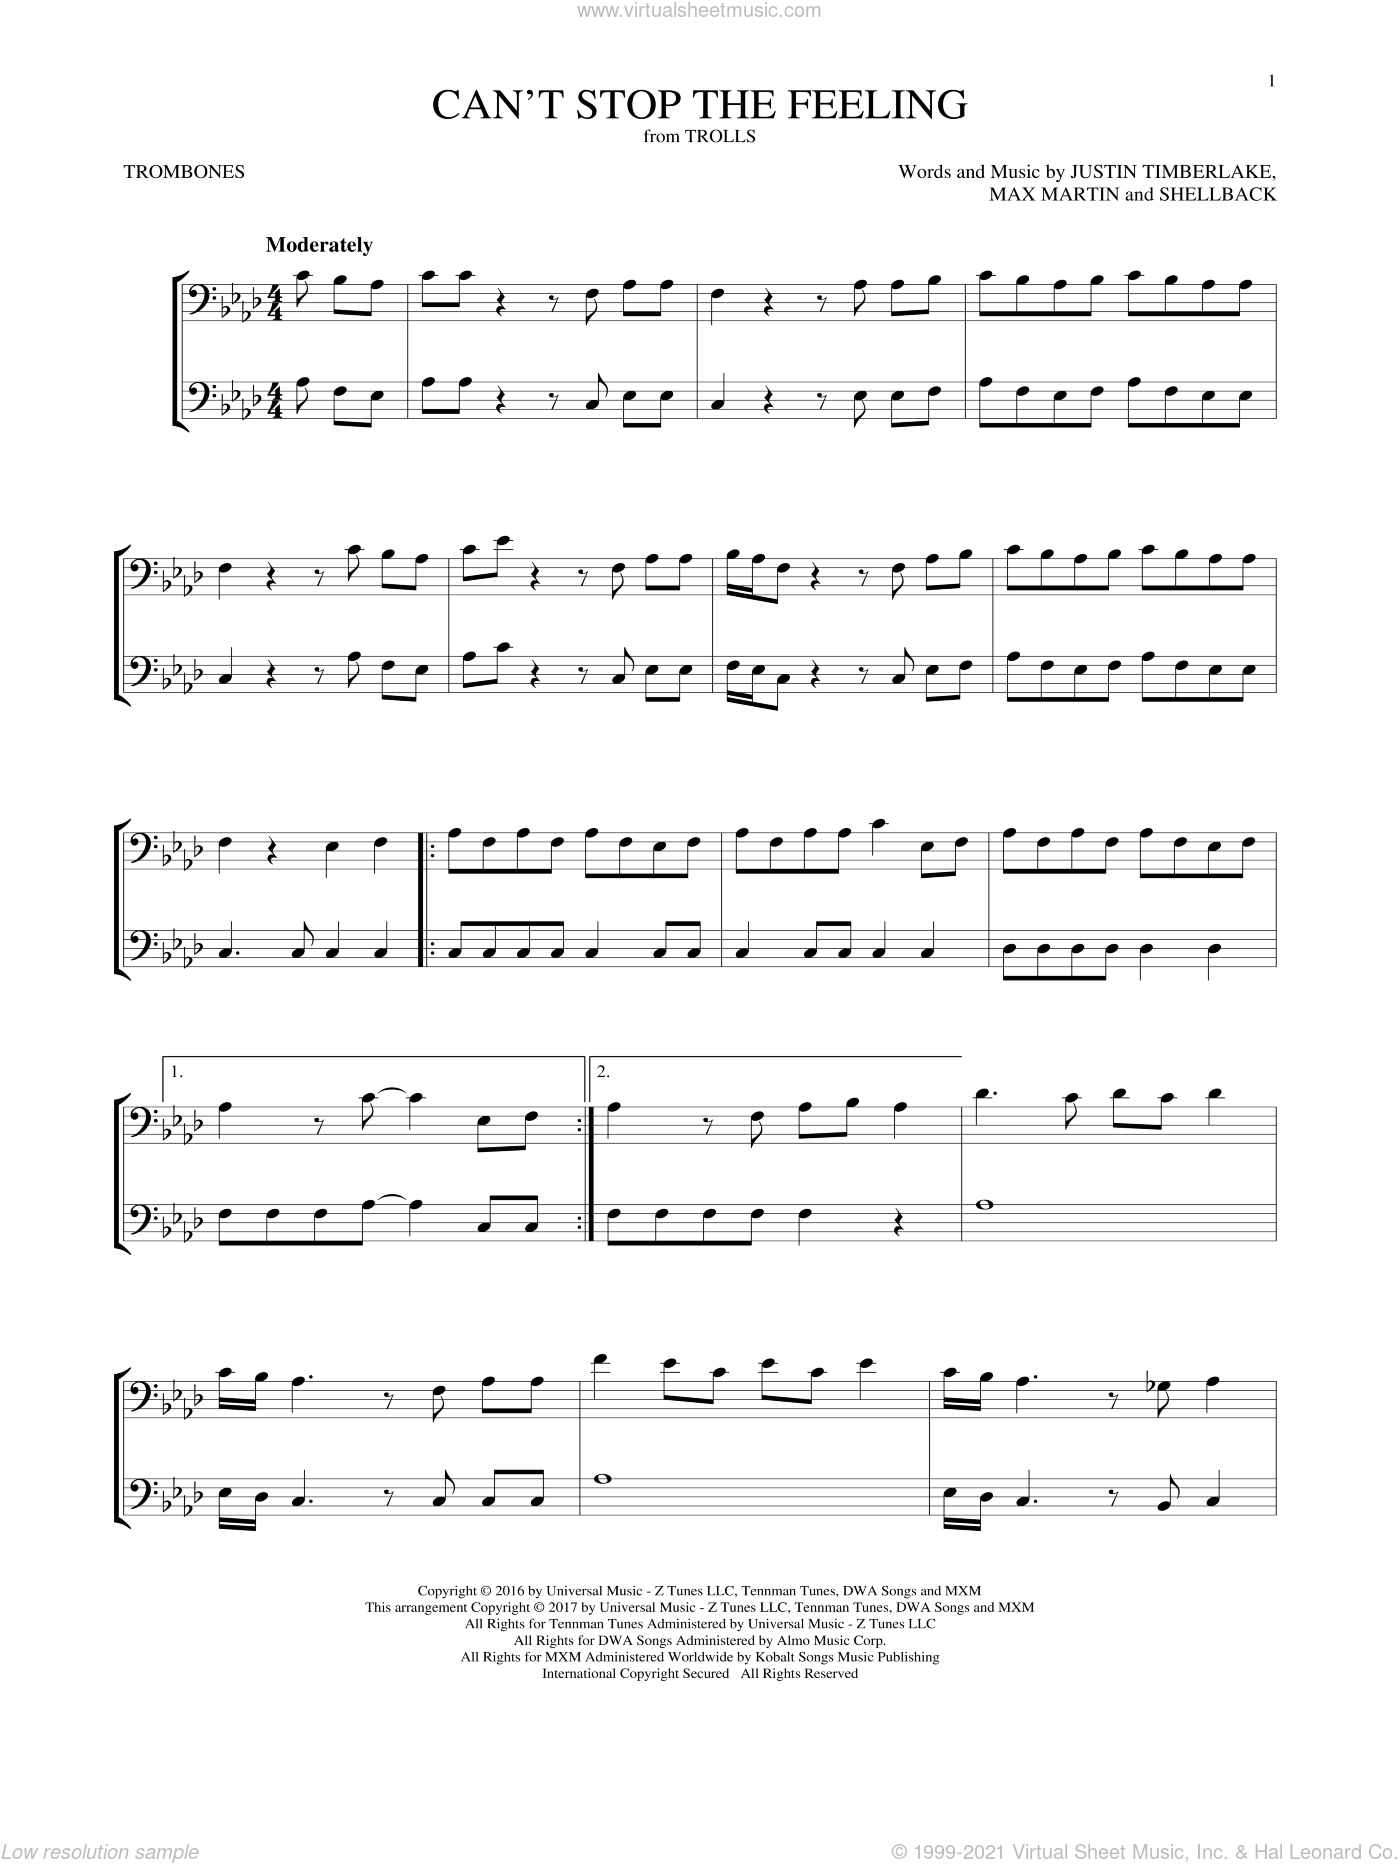 Can't Stop The Feeling sheet music for two trombones (duet, duets) by Justin Timberlake, Johan Schuster, Max Martin and Shellback, intermediate skill level